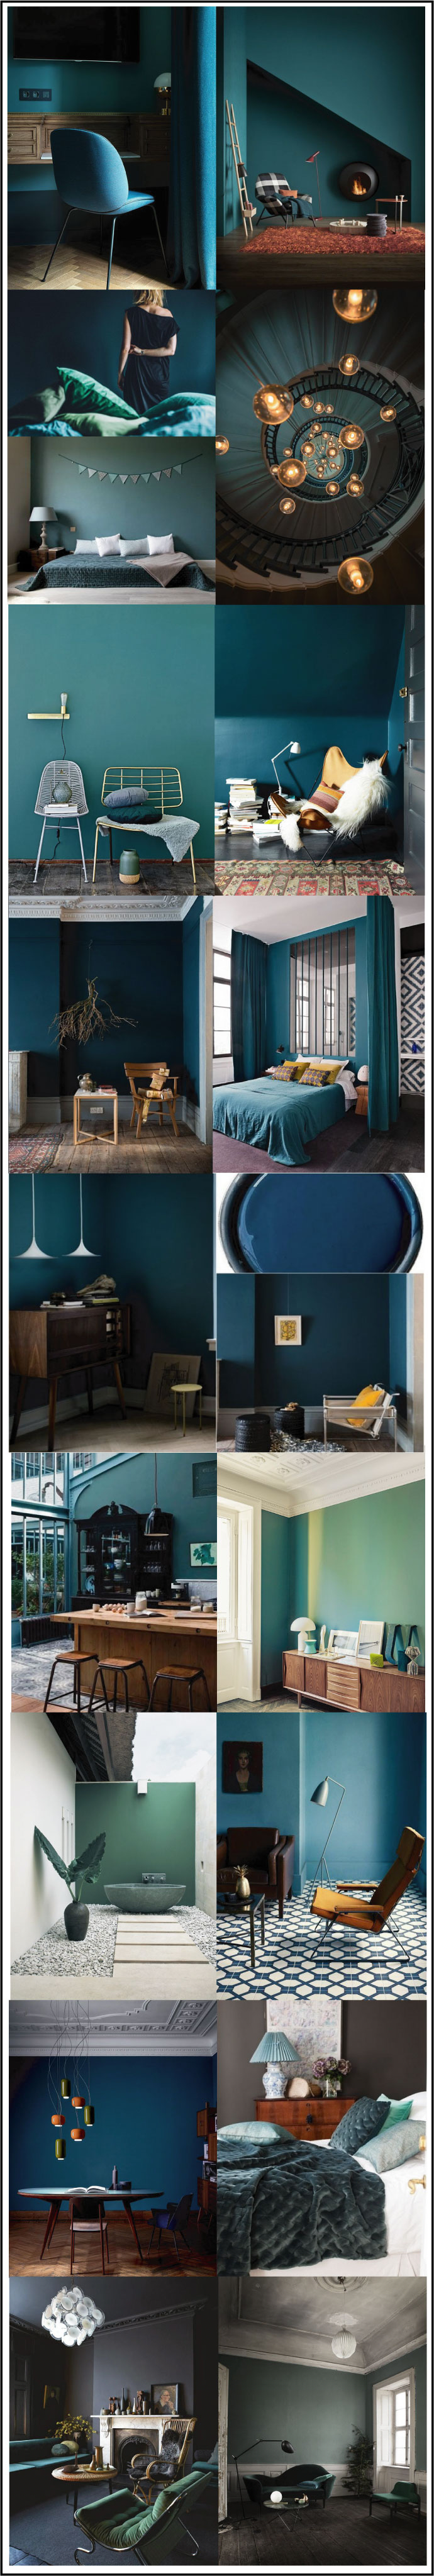 nuances de bleu vert vert balsam bleu p trole bleu paon bleu canard chiara stella home. Black Bedroom Furniture Sets. Home Design Ideas